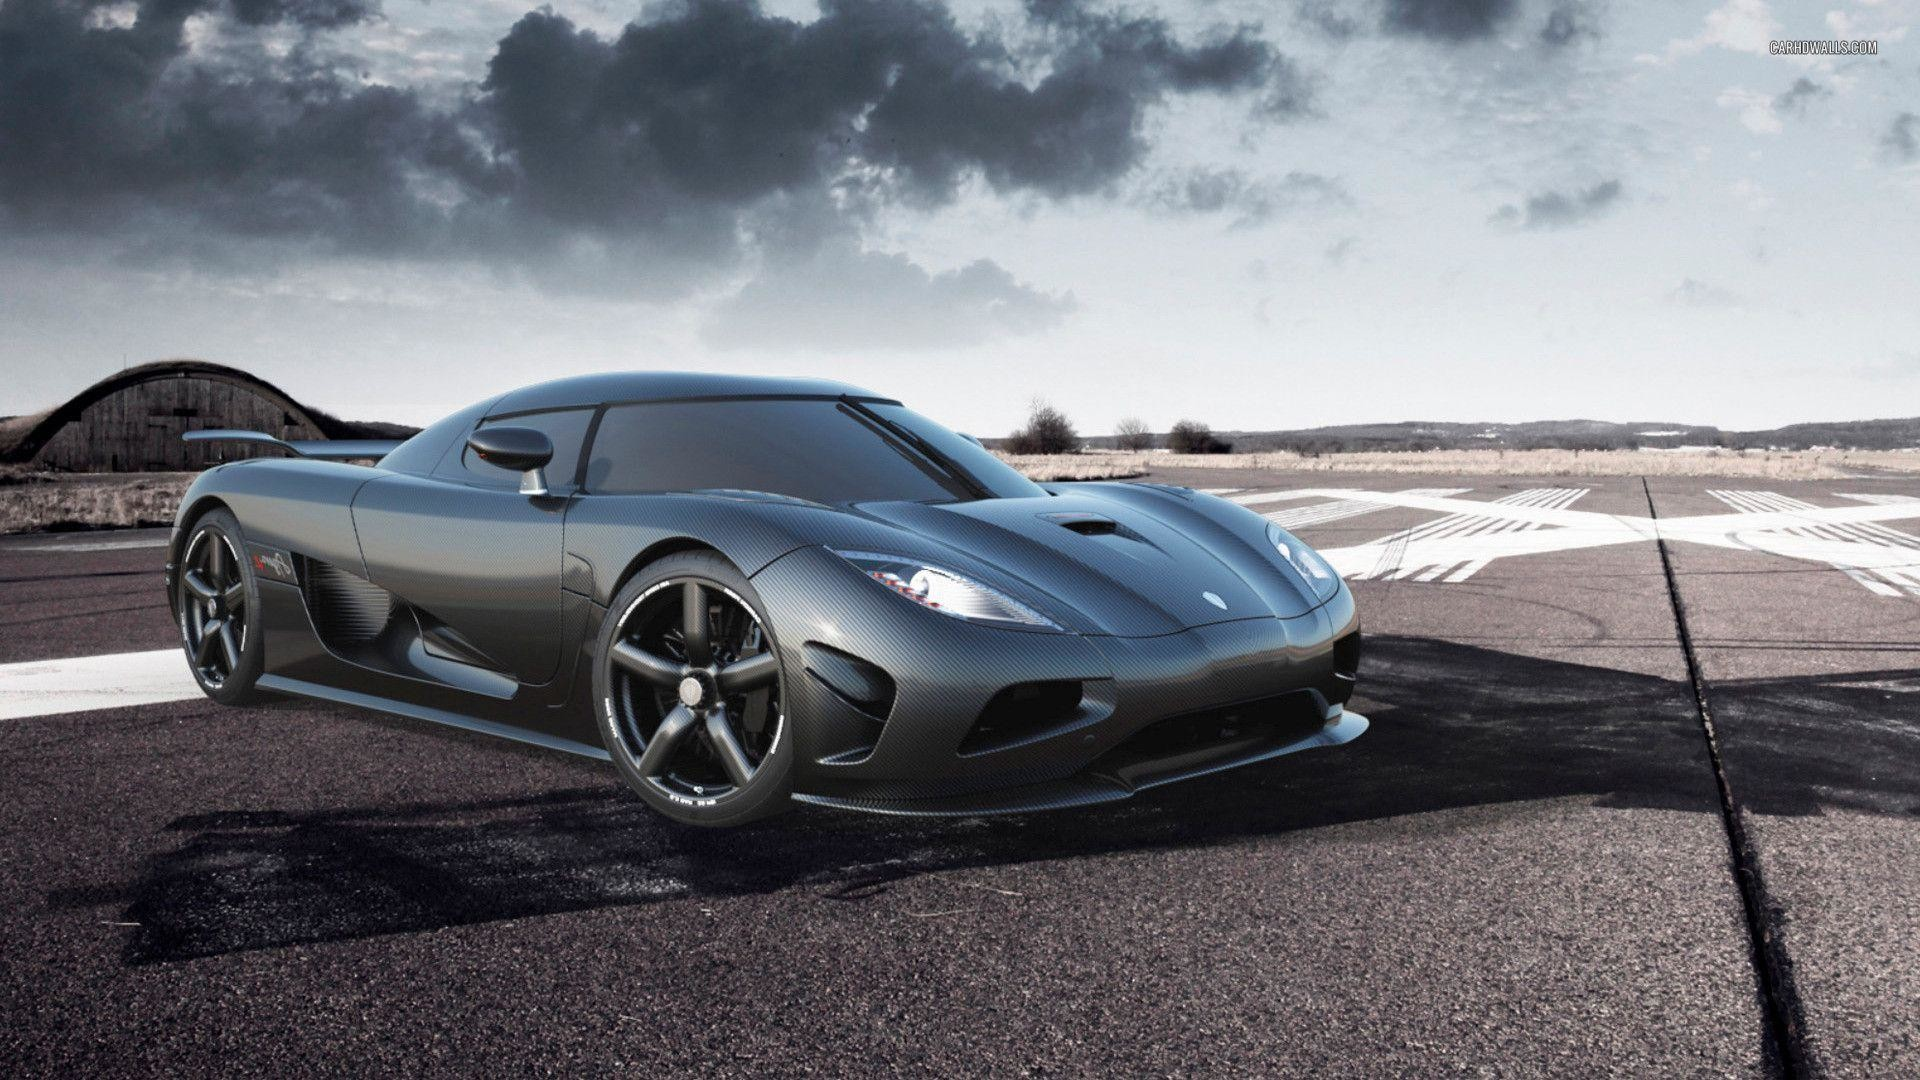 1920x1080 Wallpapers For > Koenigsegg Agera R Wallpaper Blue